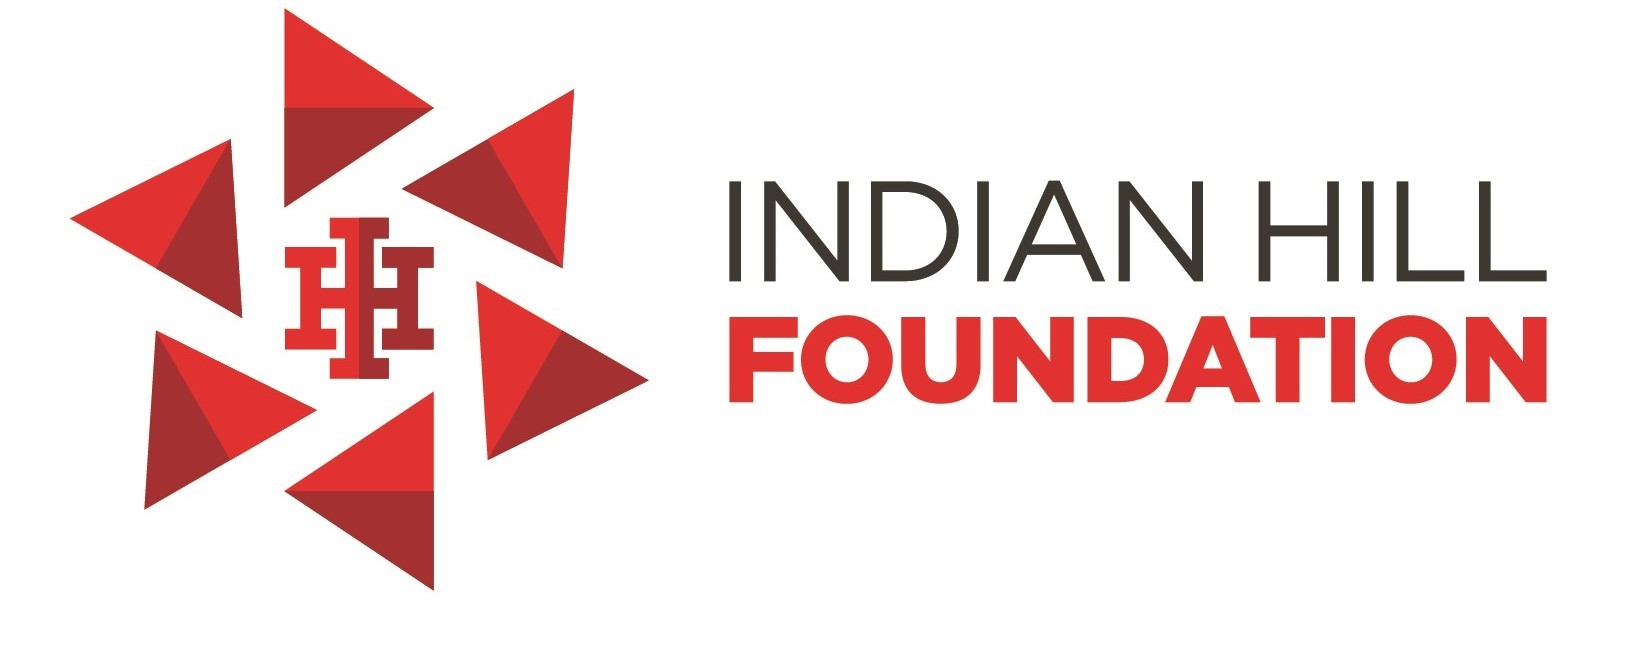 IH Foundation logo